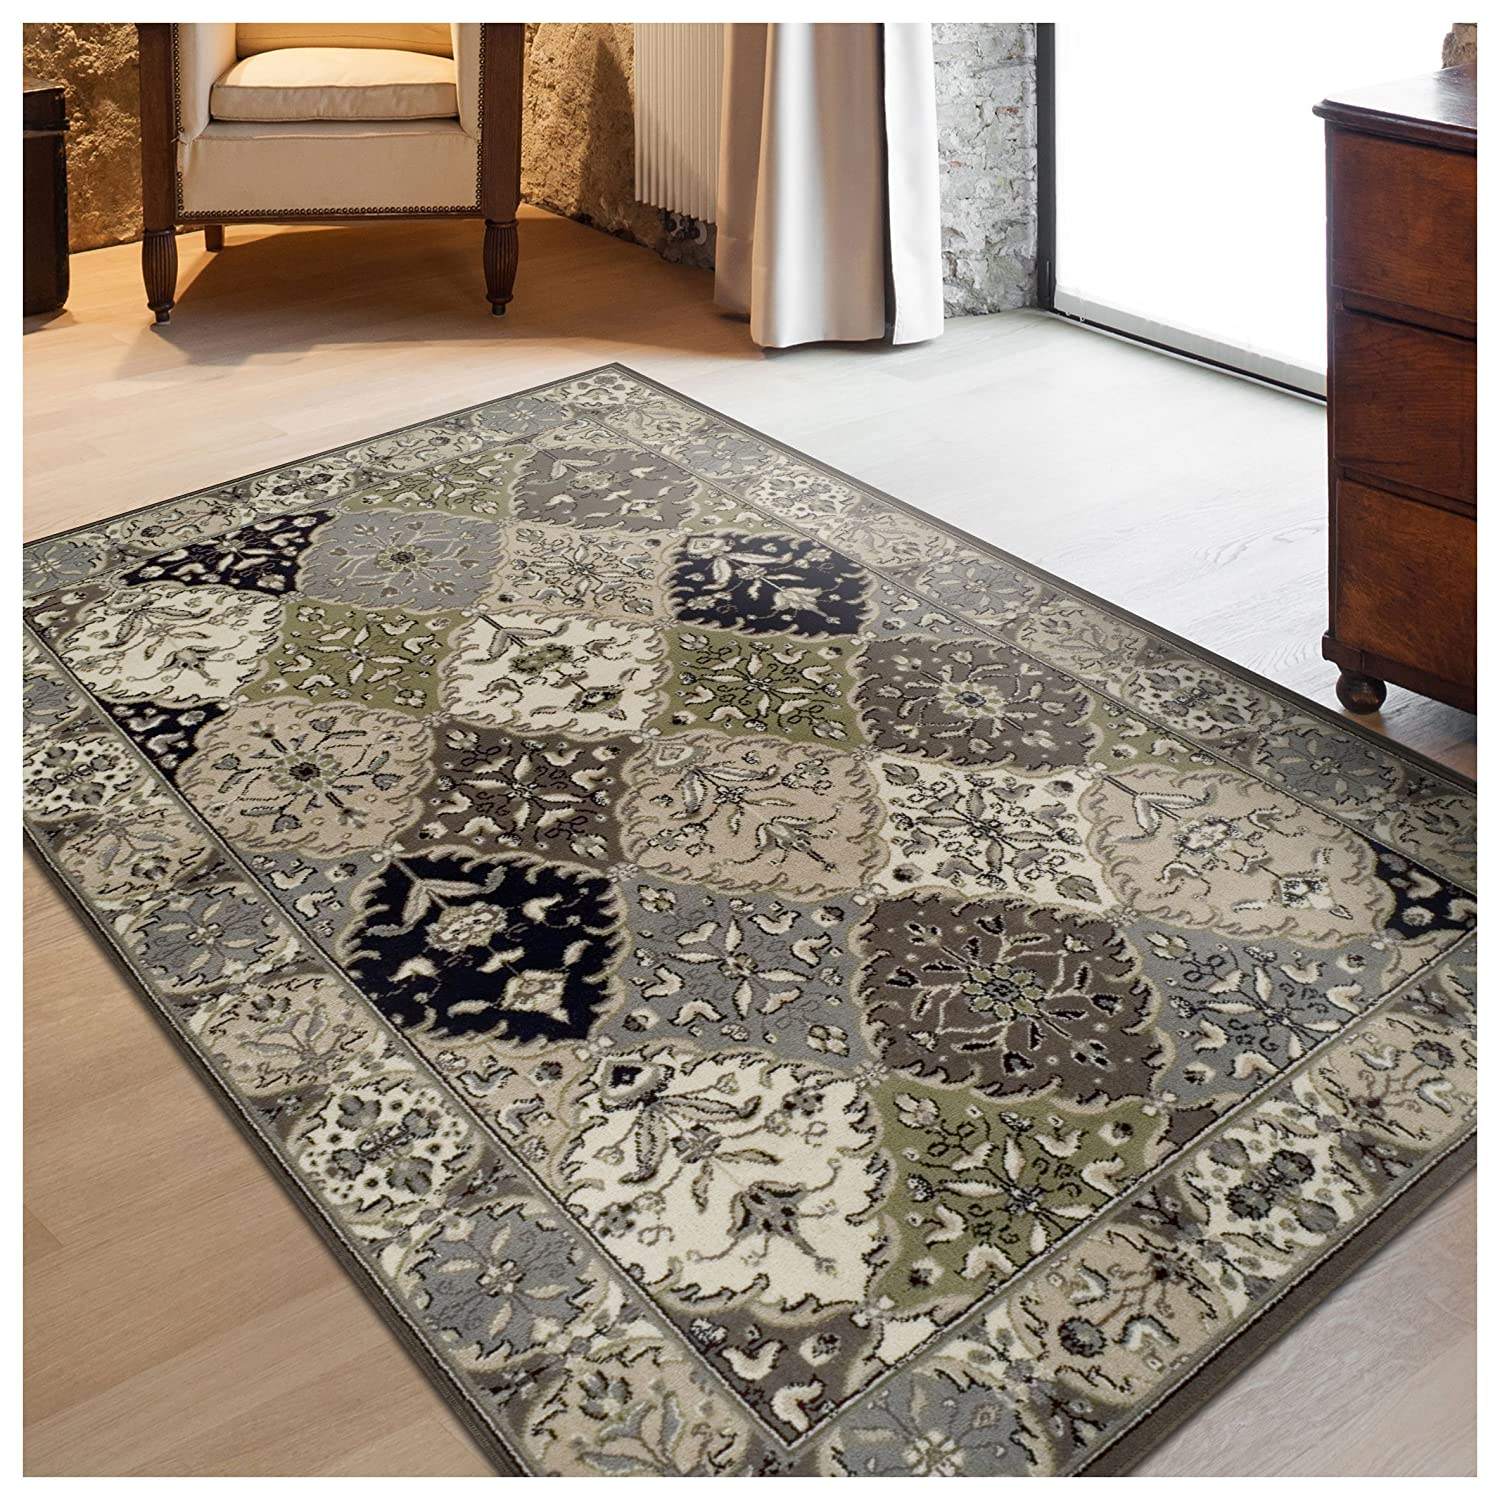 Traditional Persian Rug Design 27 x 8 Runner Fashionable and Affordable Woven Rugs Superior Paloma Collection Area Rug 8mm Pile Height with Jute Backing